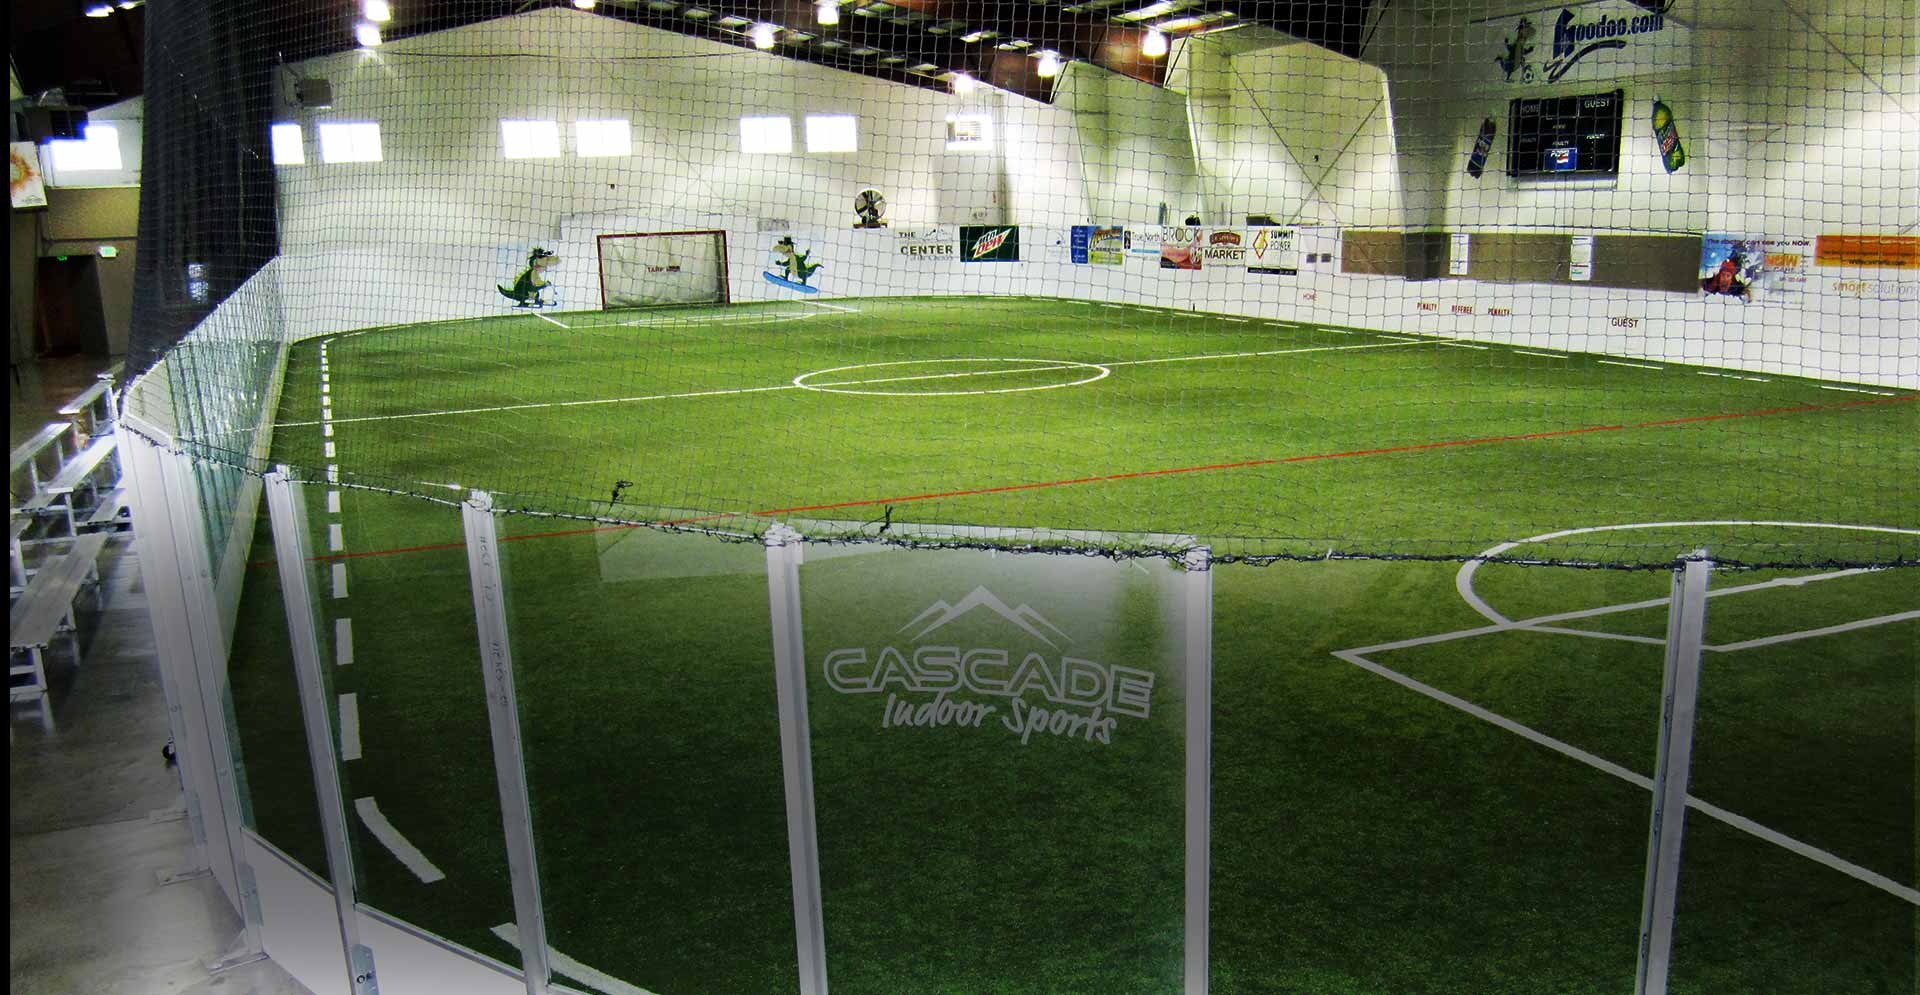 Cascade Indoor Sports_5.jpg